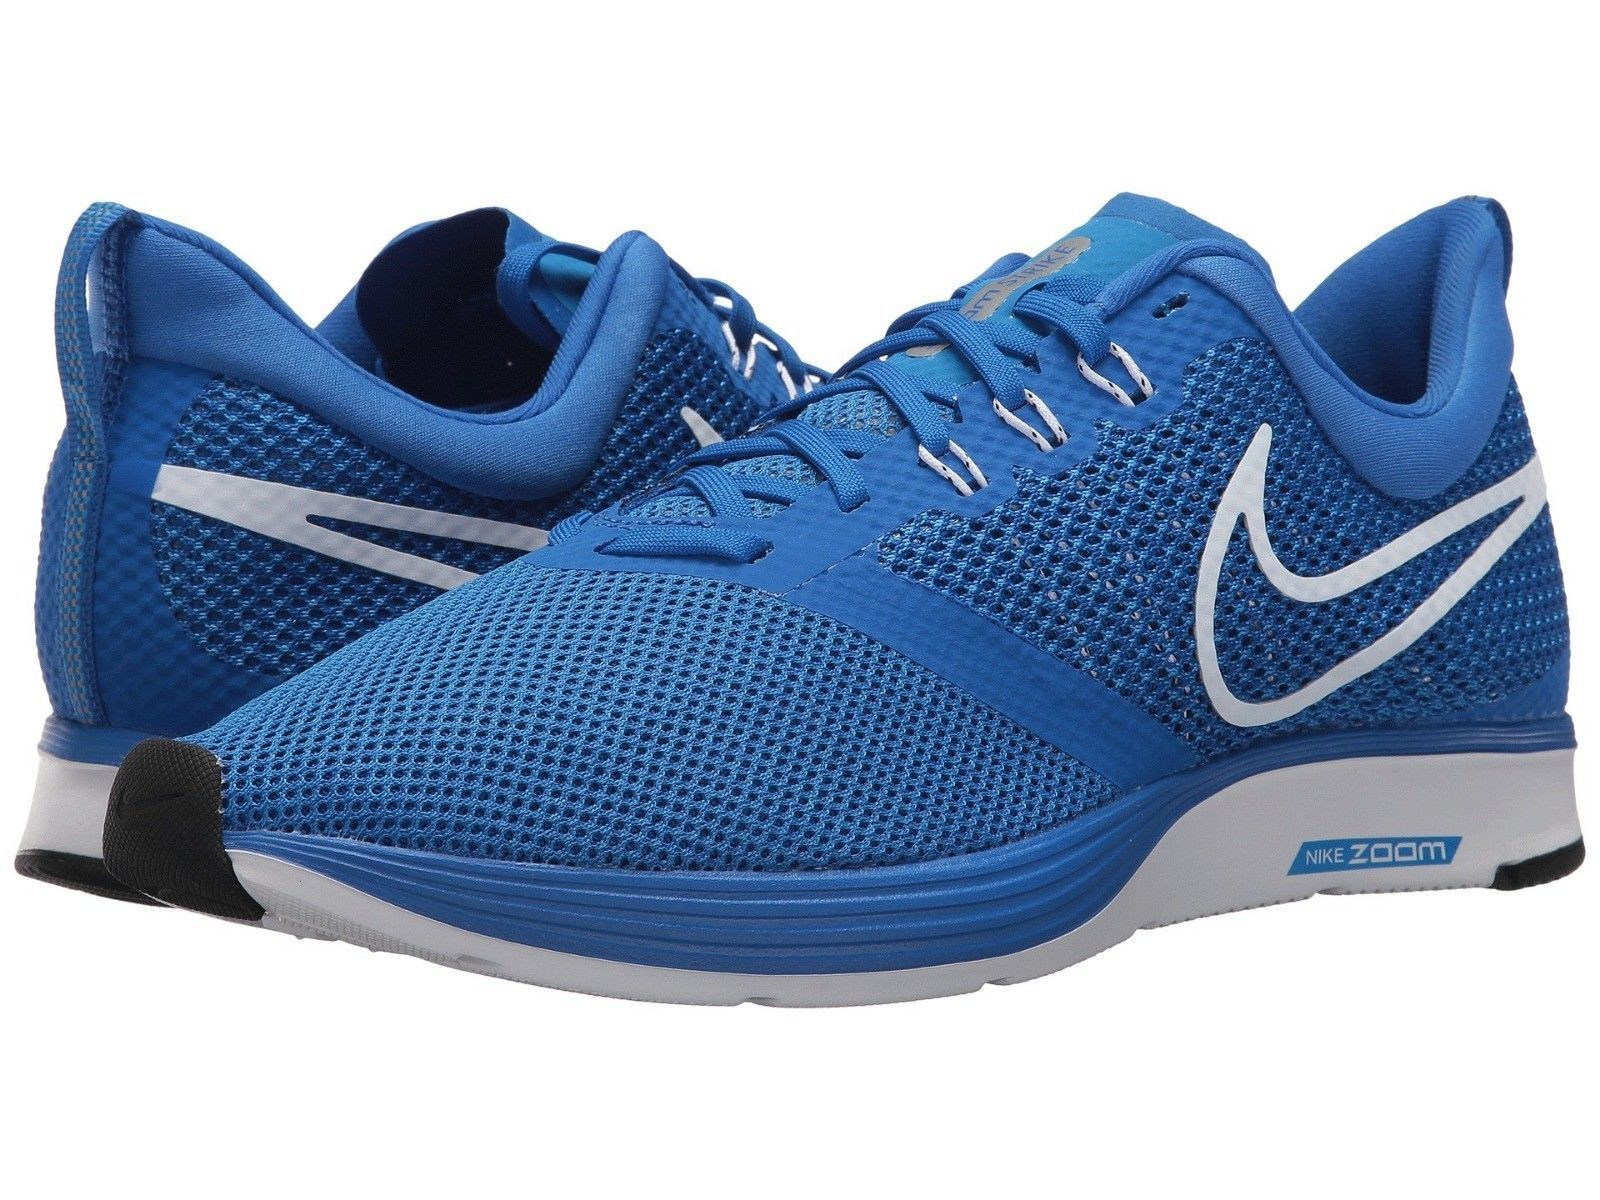 85f5950ea39d 57. 57. Previous. Men s Nike Zoom Strike Running Shoes